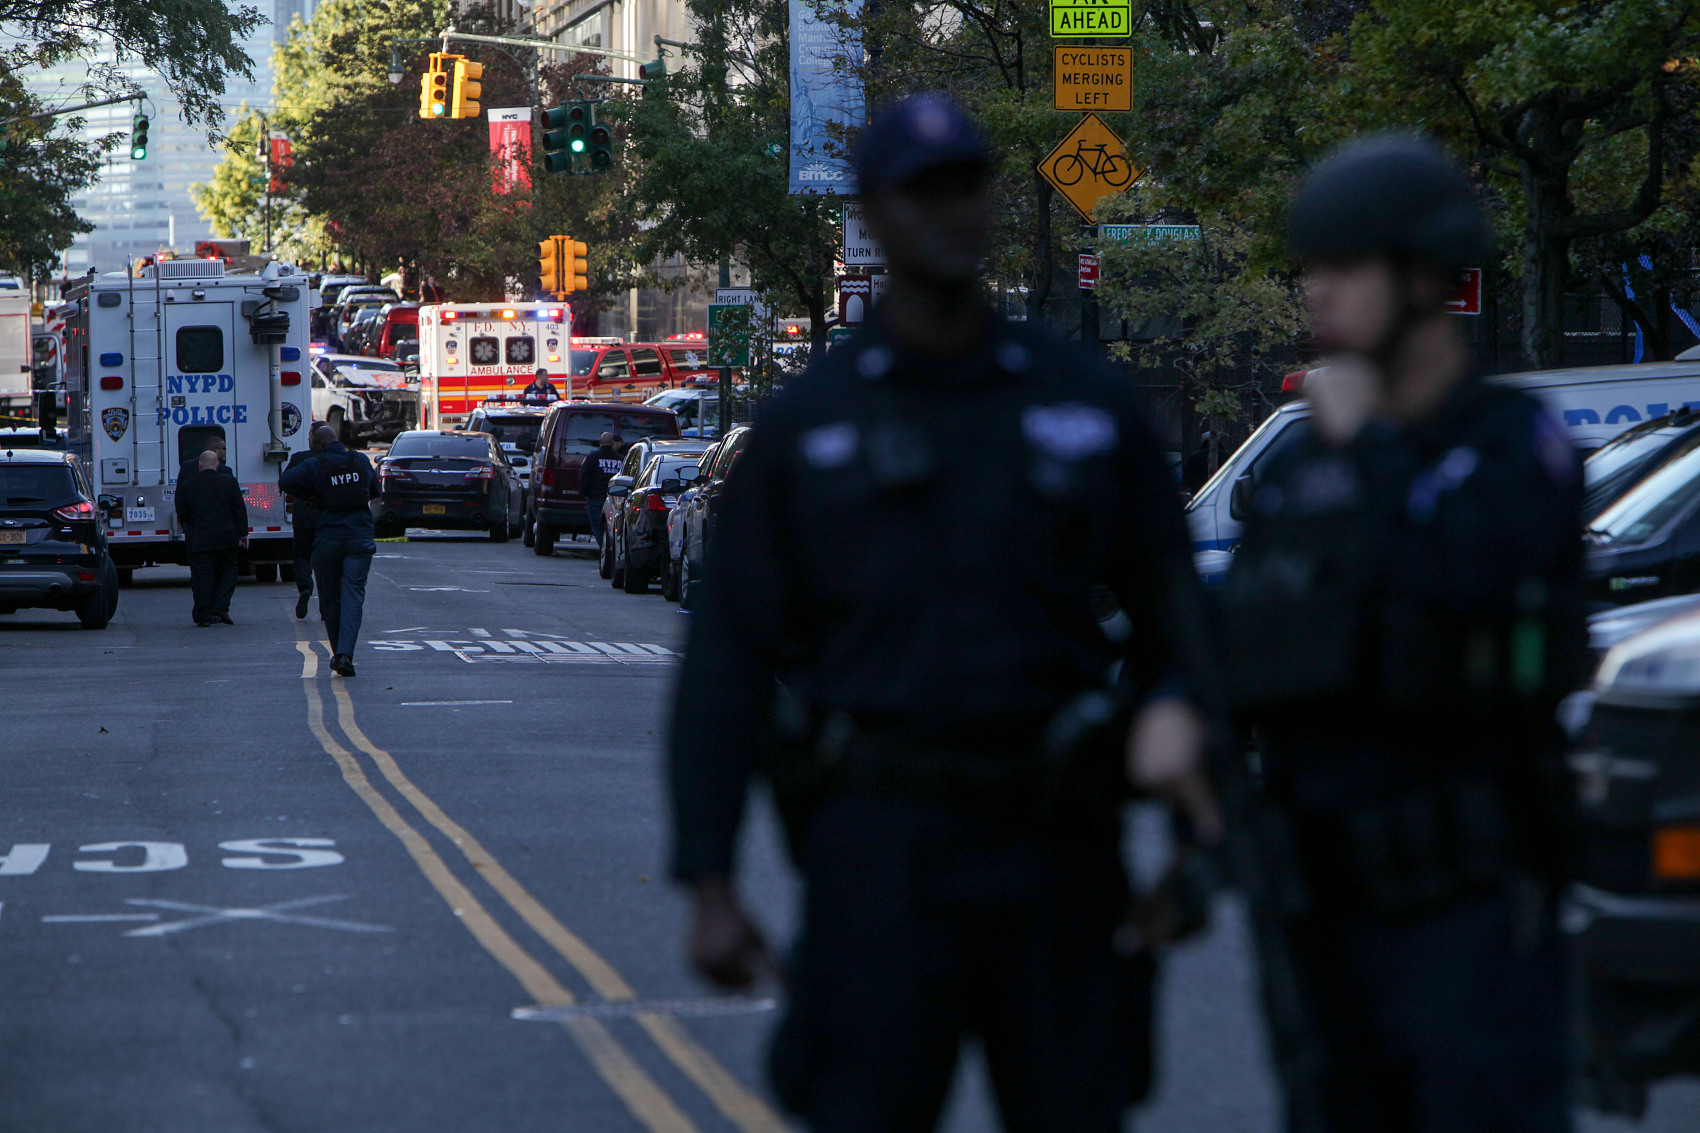 China denounces NYC deadly attack